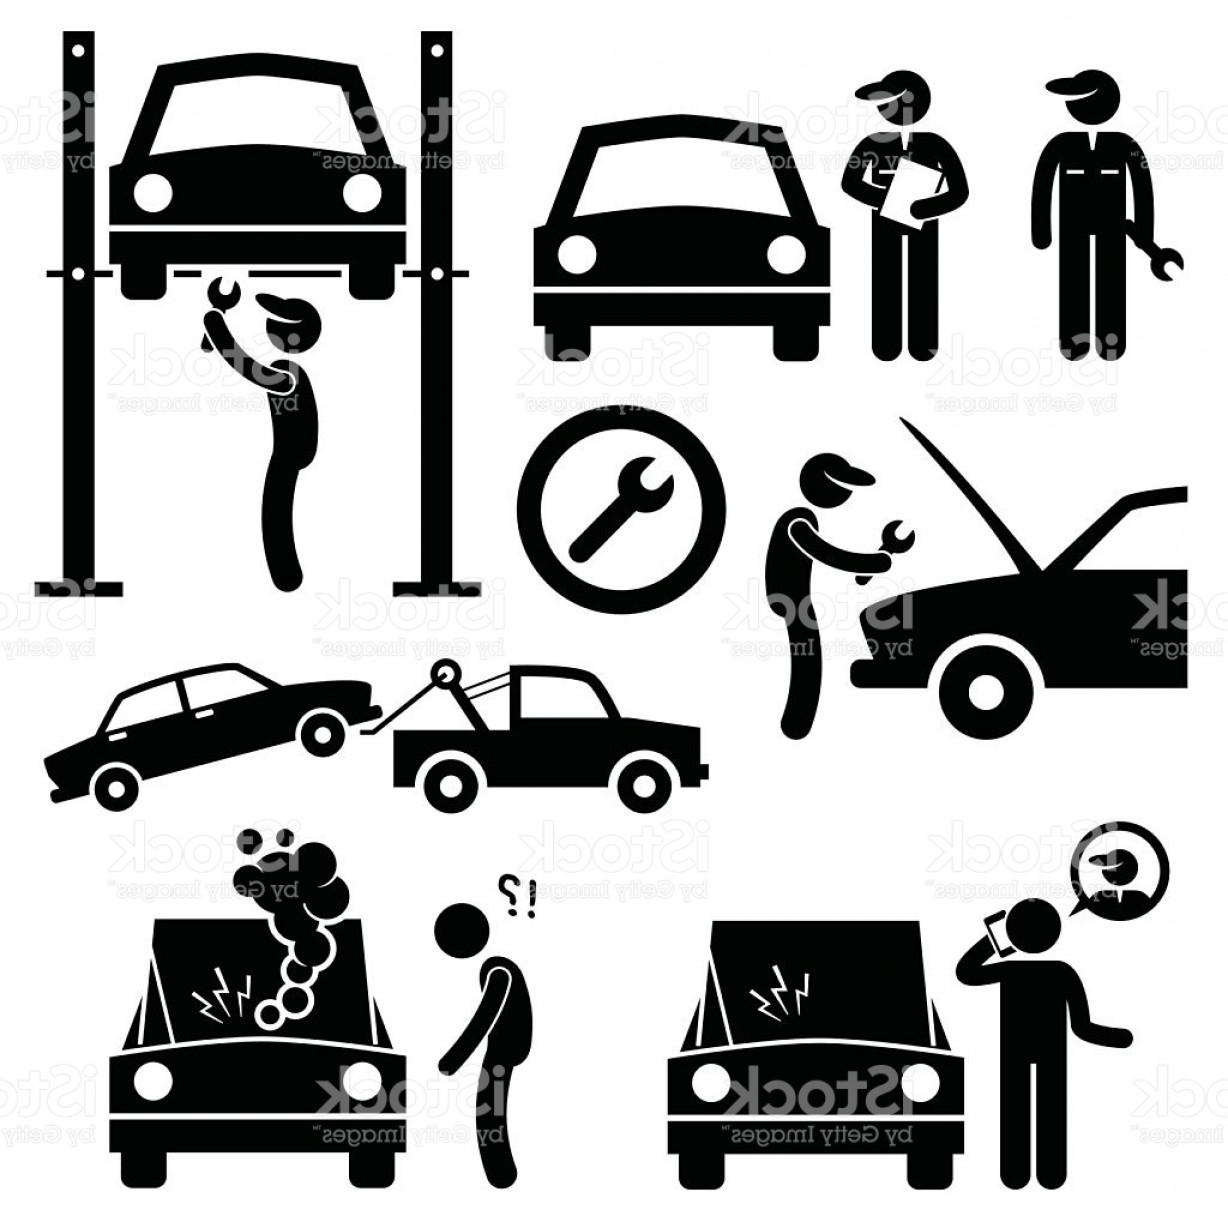 Workshop Icon Vector: Car Repair Services Workshop Mechanic Stick Figure Pictogram Icons Gm